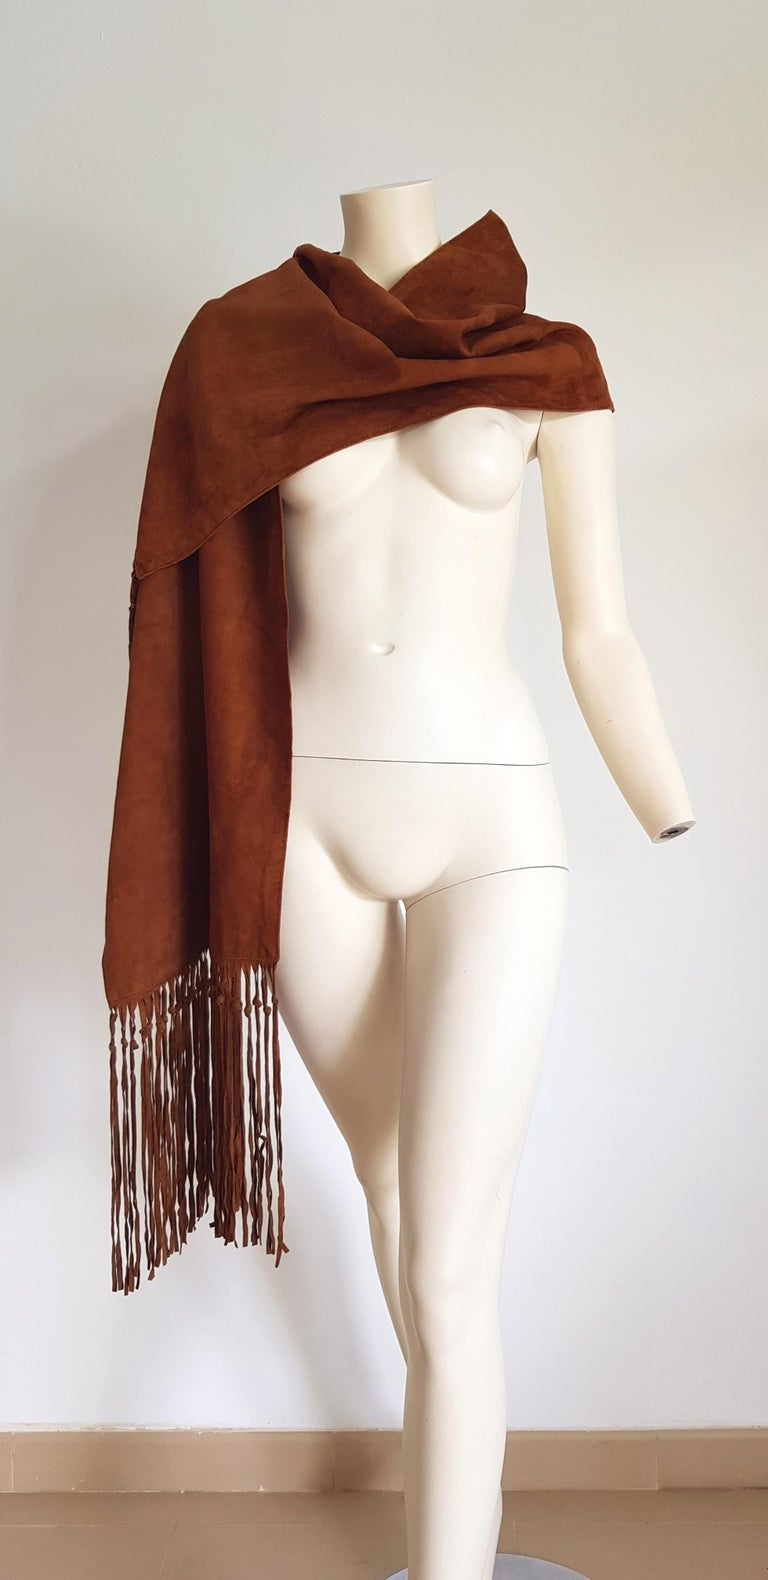 HERMES brown suede scarf with fringes, silk lined, collectible item - Unworn, New.  Measurements cm: high 38, length 220  TO CONVERT: cm x 0.39 = inch. By